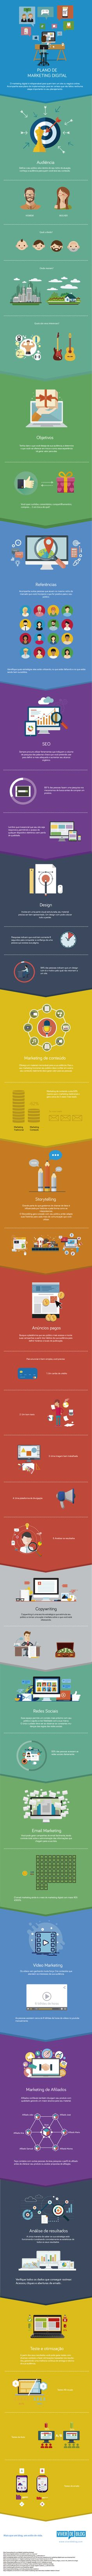 vdb-infografico-plano-de-marketing3